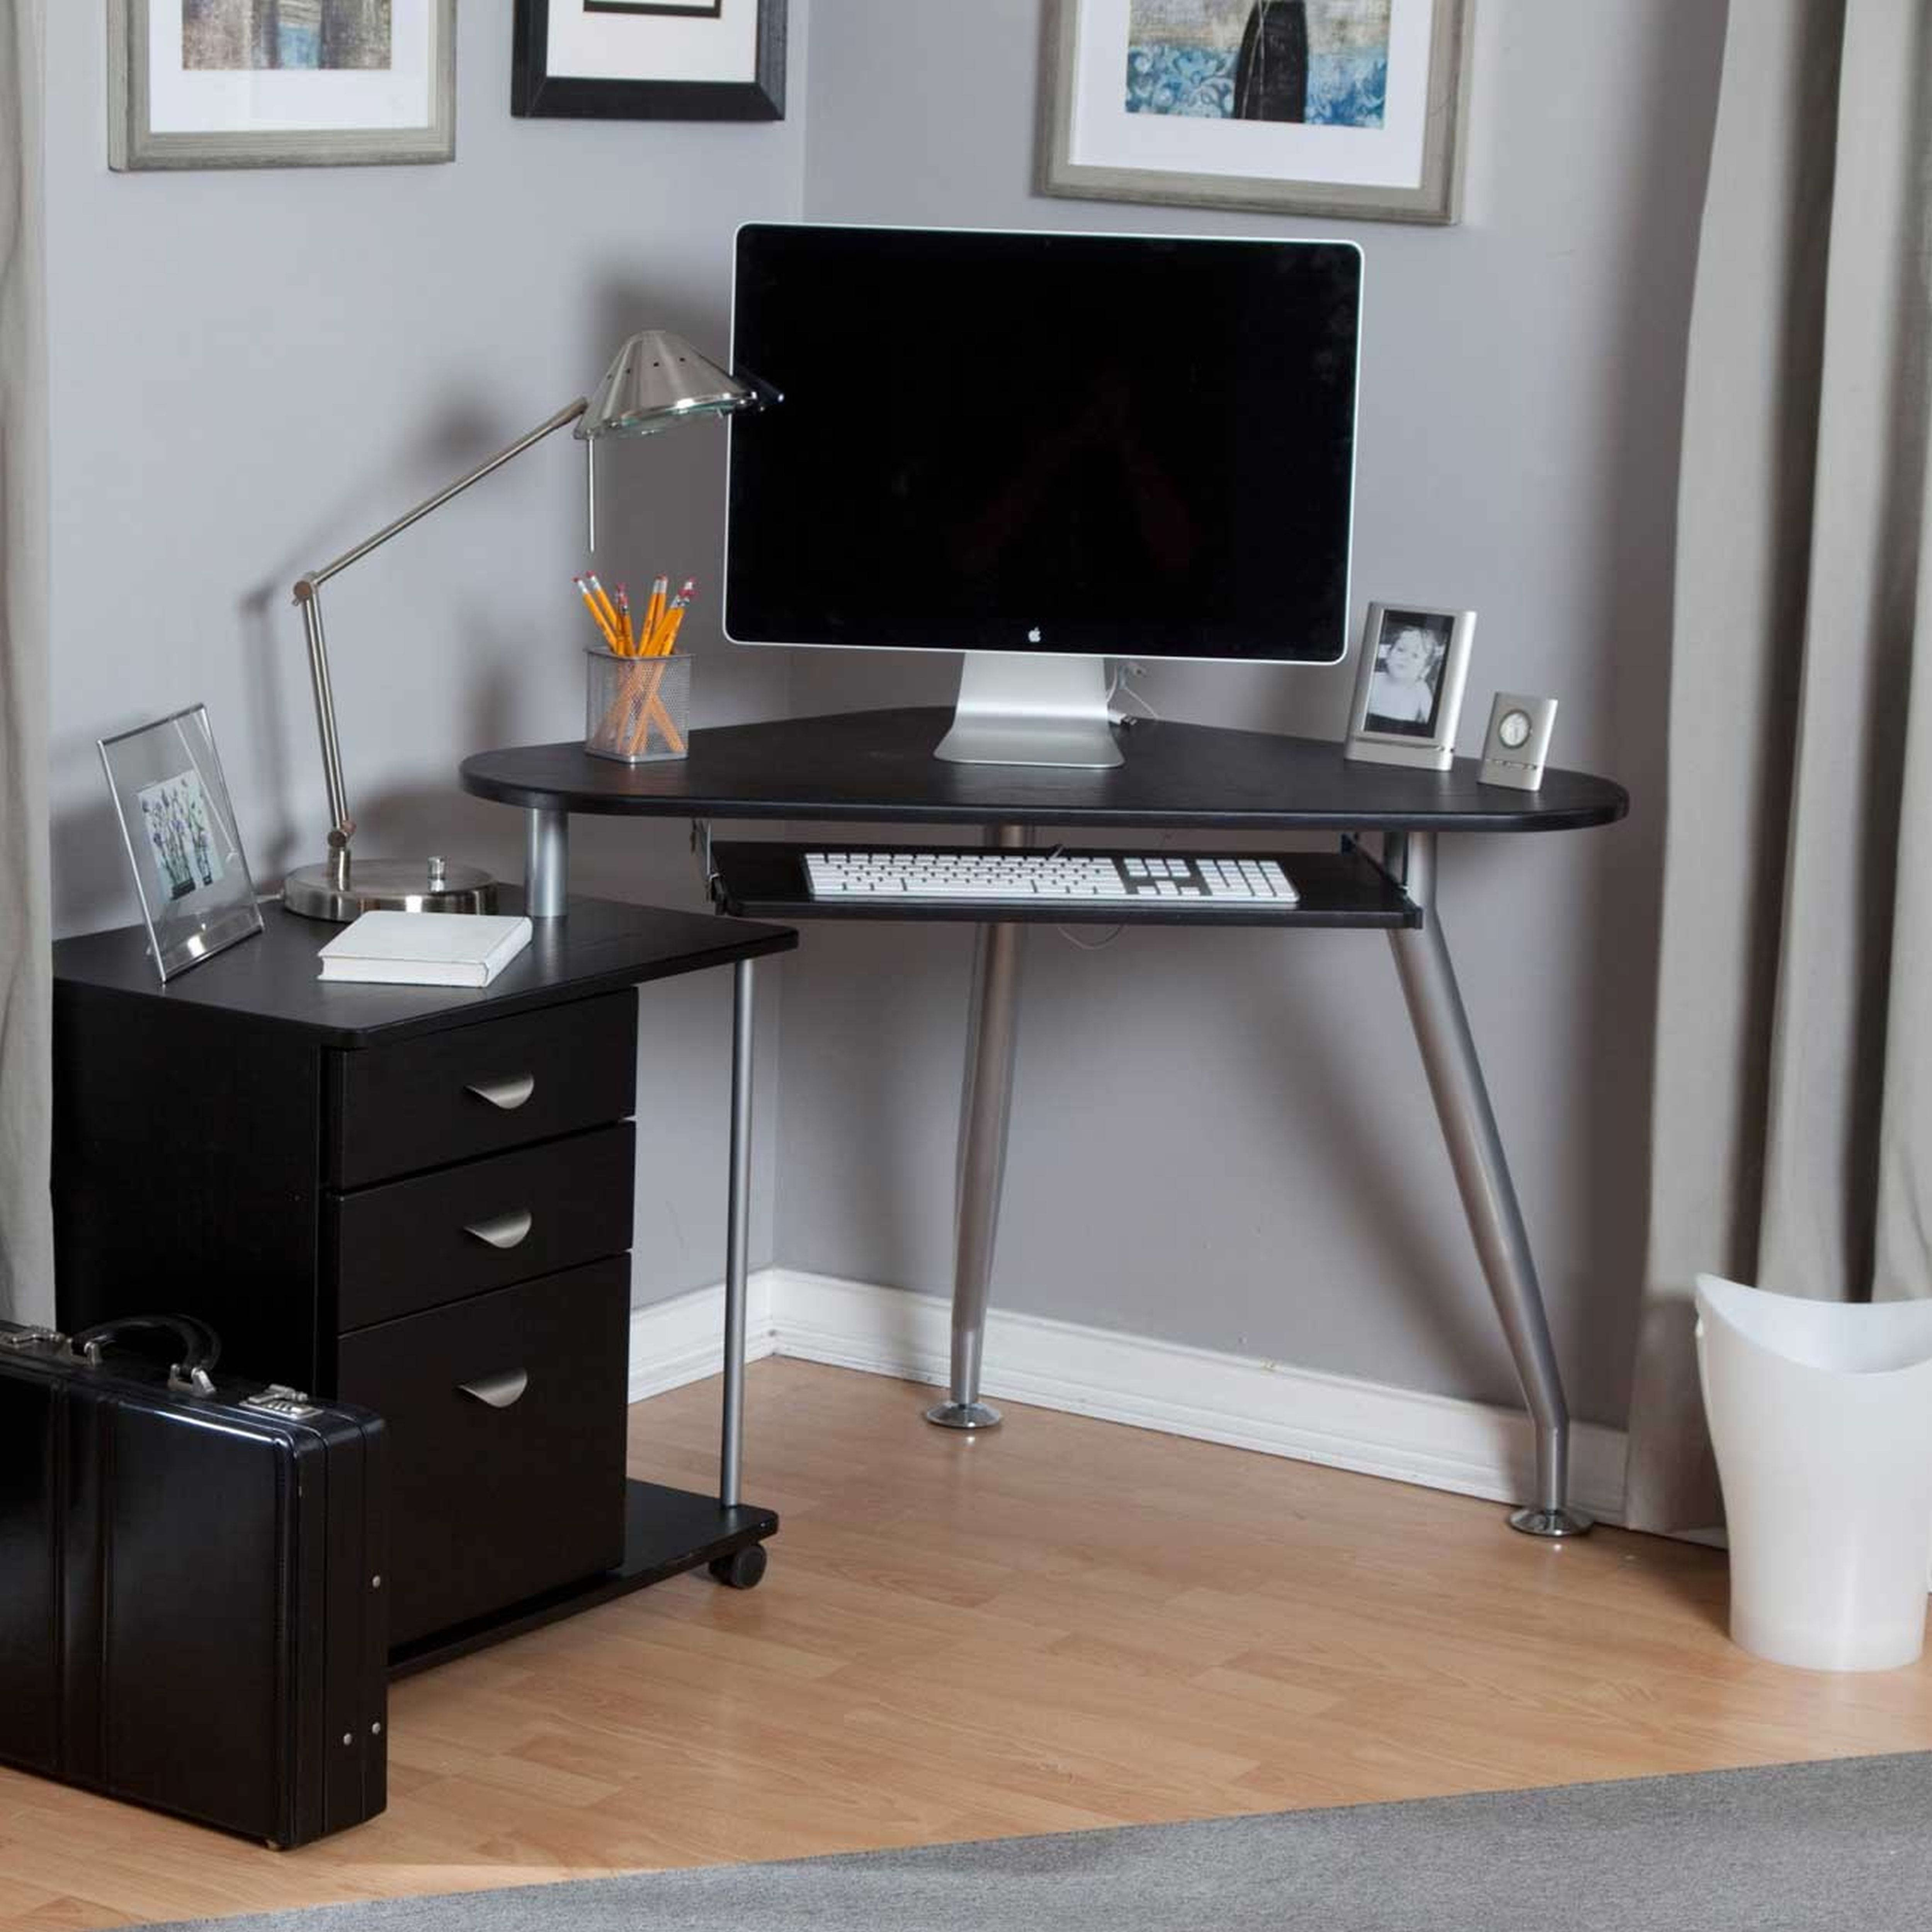 2019 The Corner Computer Desk And Its Important Function Throughout Computer Desks For Bedrooms (View 2 of 20)